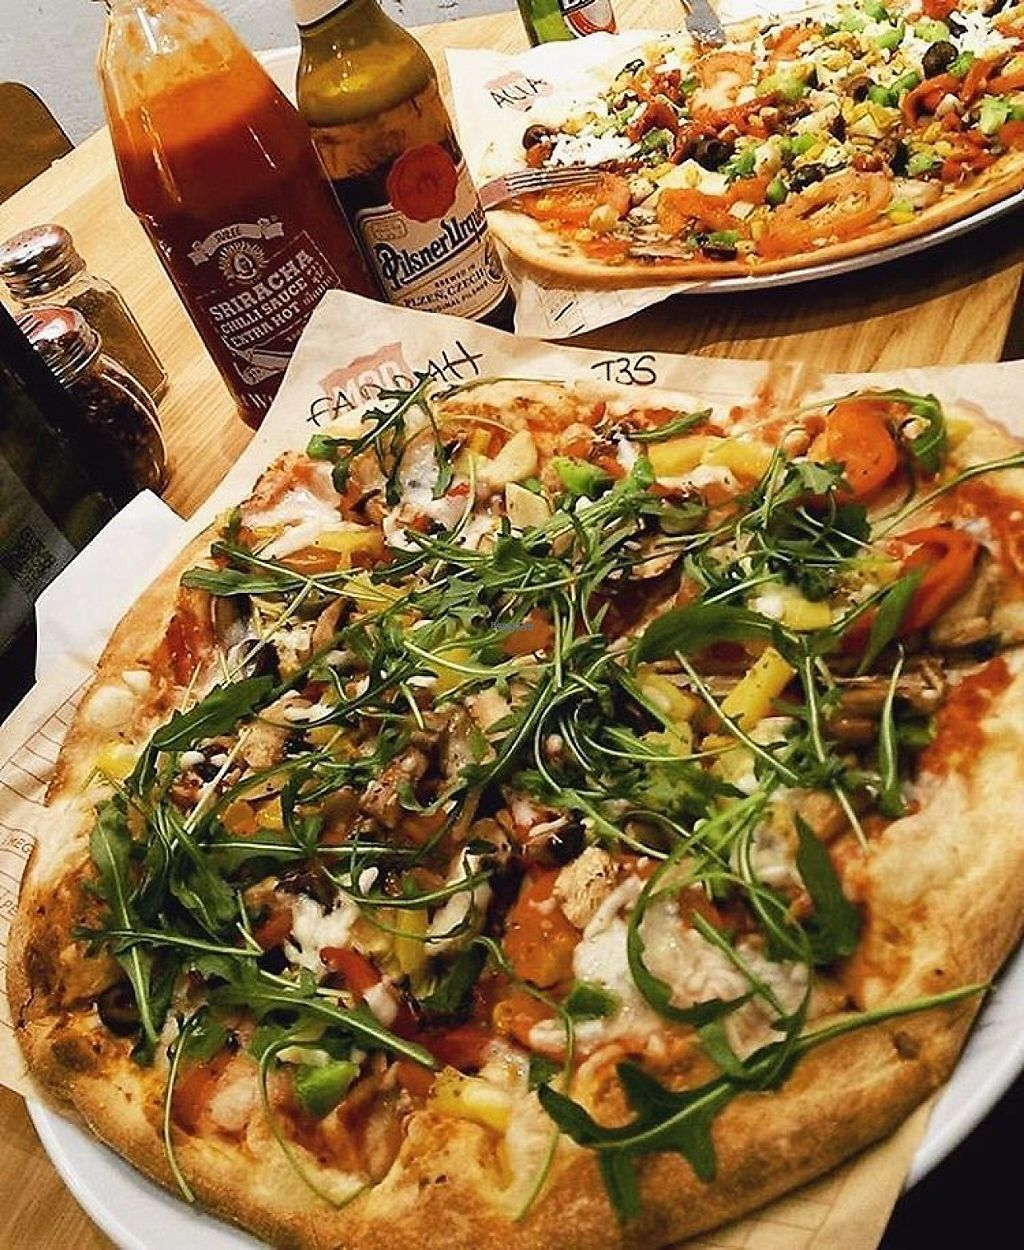 """Photo of Mod Pizza - Cardigan Fields  by <a href=""""/members/profile/NicMOD"""">NicMOD</a> <br/>Build you own Vegan Pizza, with unlimited toppings and dairy free cheese!  <br/> February 15, 2017  - <a href='/contact/abuse/image/87200/226843'>Report</a>"""